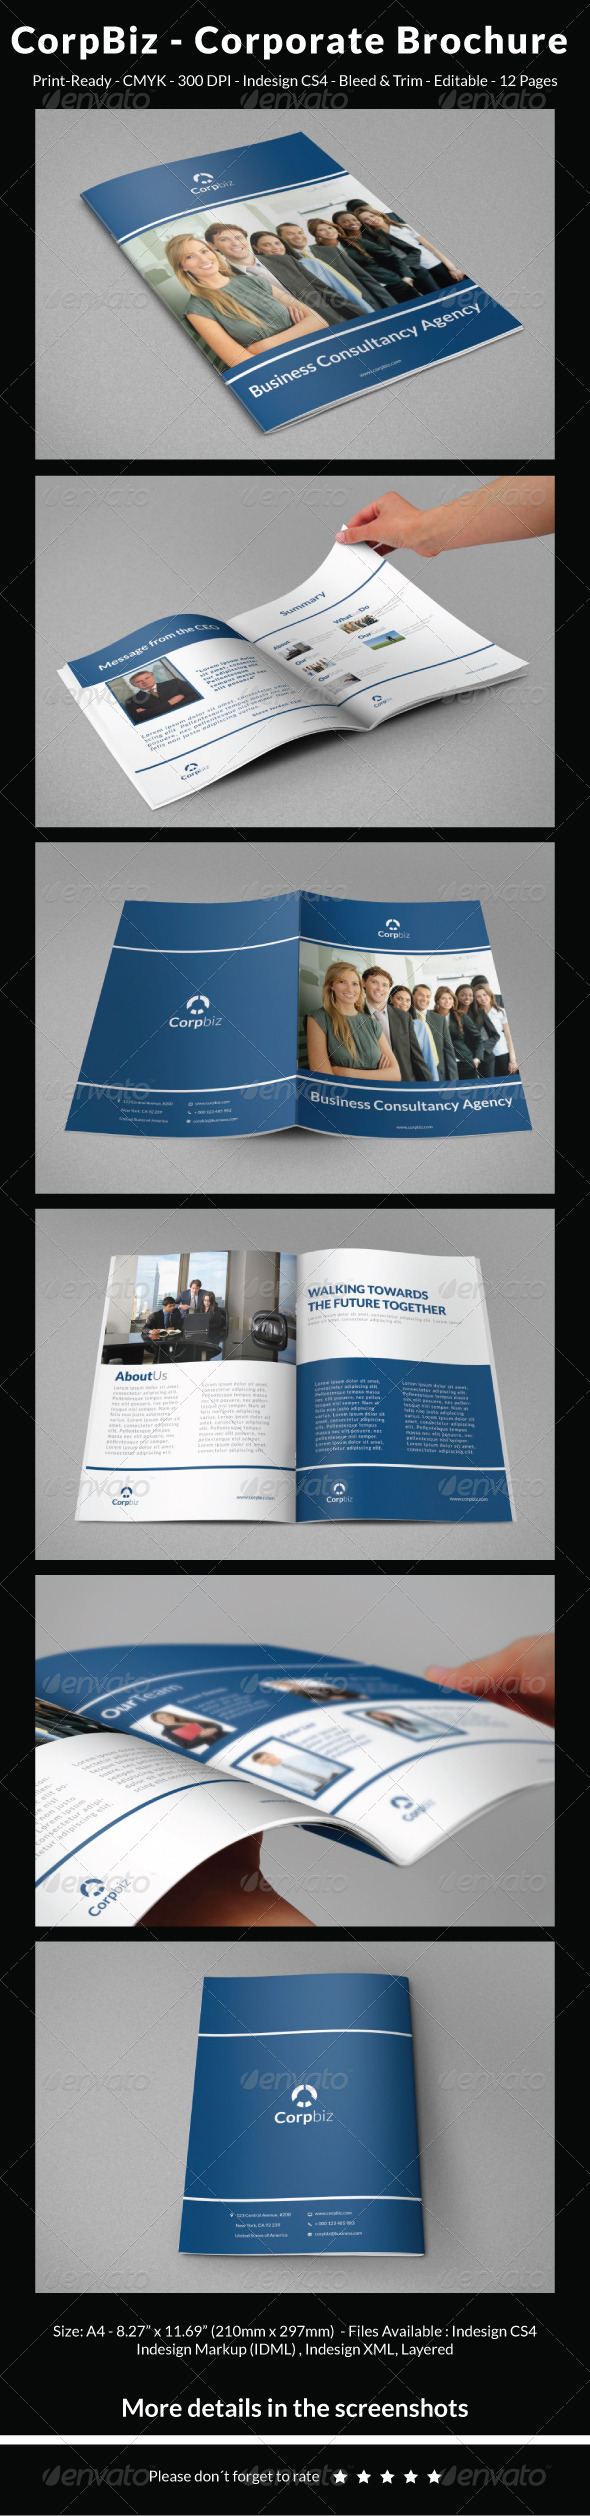 GraphicRiver CorpBiz Corporate Brochure 5309510